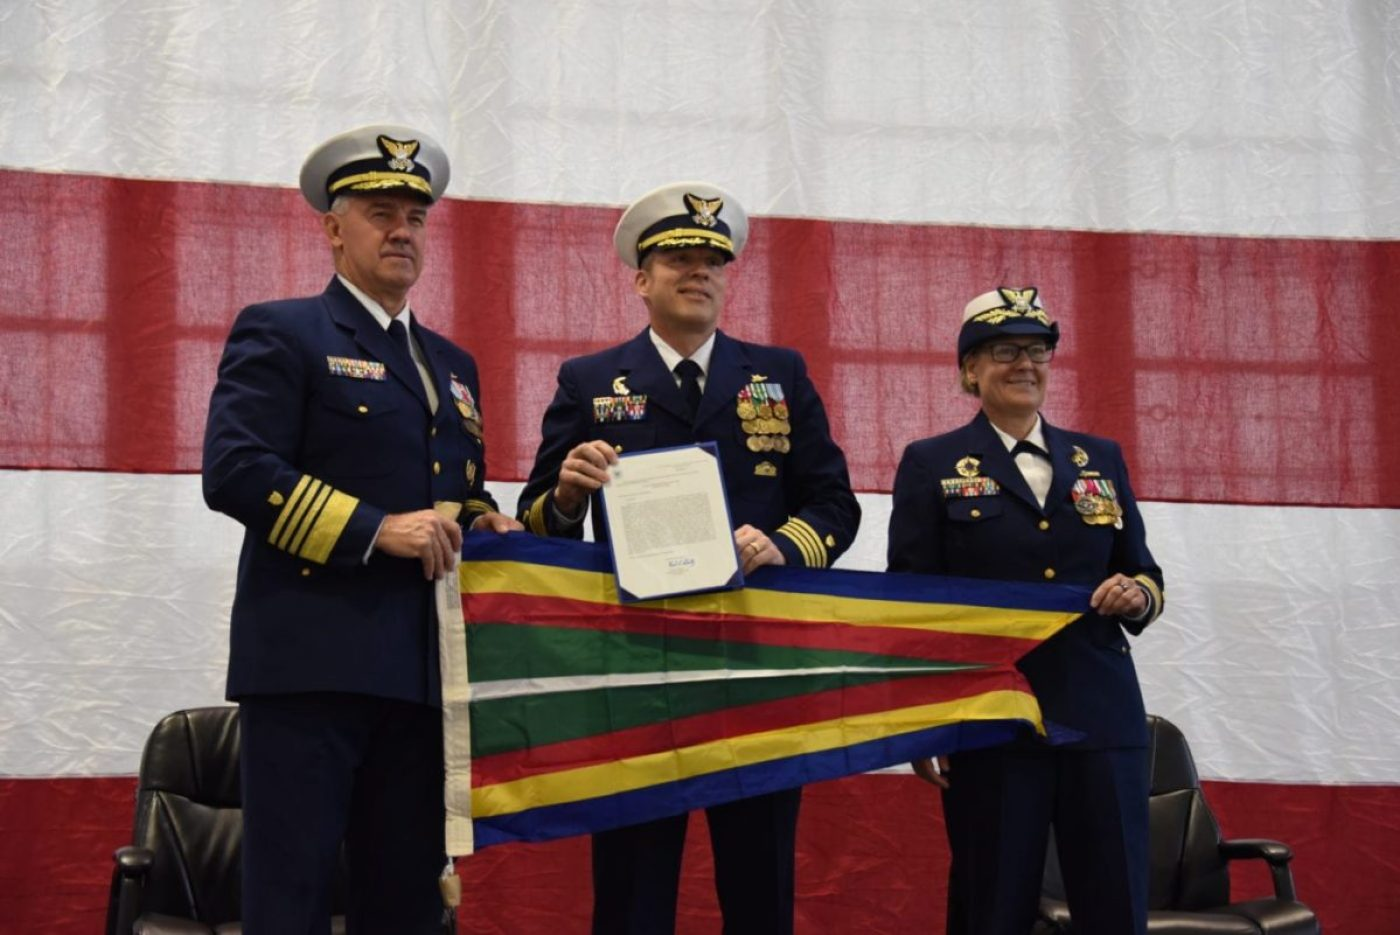 Coast Guard Commandant Adm. Karl L. Schultz, Vice Adm. Linda Fagan, and Capt. Riley Gatewood, hold a pennant during the Coast Guard Cutter Douglas Munro (WHEC 724) decommissioning ceremony in Kodiak, Alaska, on April 24, 2021. In 1998, the cutter interdicted over 11.5 tons of cocaine on a Mexican flagged vessel, the Xolesuientle, to this day one of the largest single drug seizures in Coast Guard history. Coast Guard photo by Petty Officer 3rd Class Janessa Warschkow